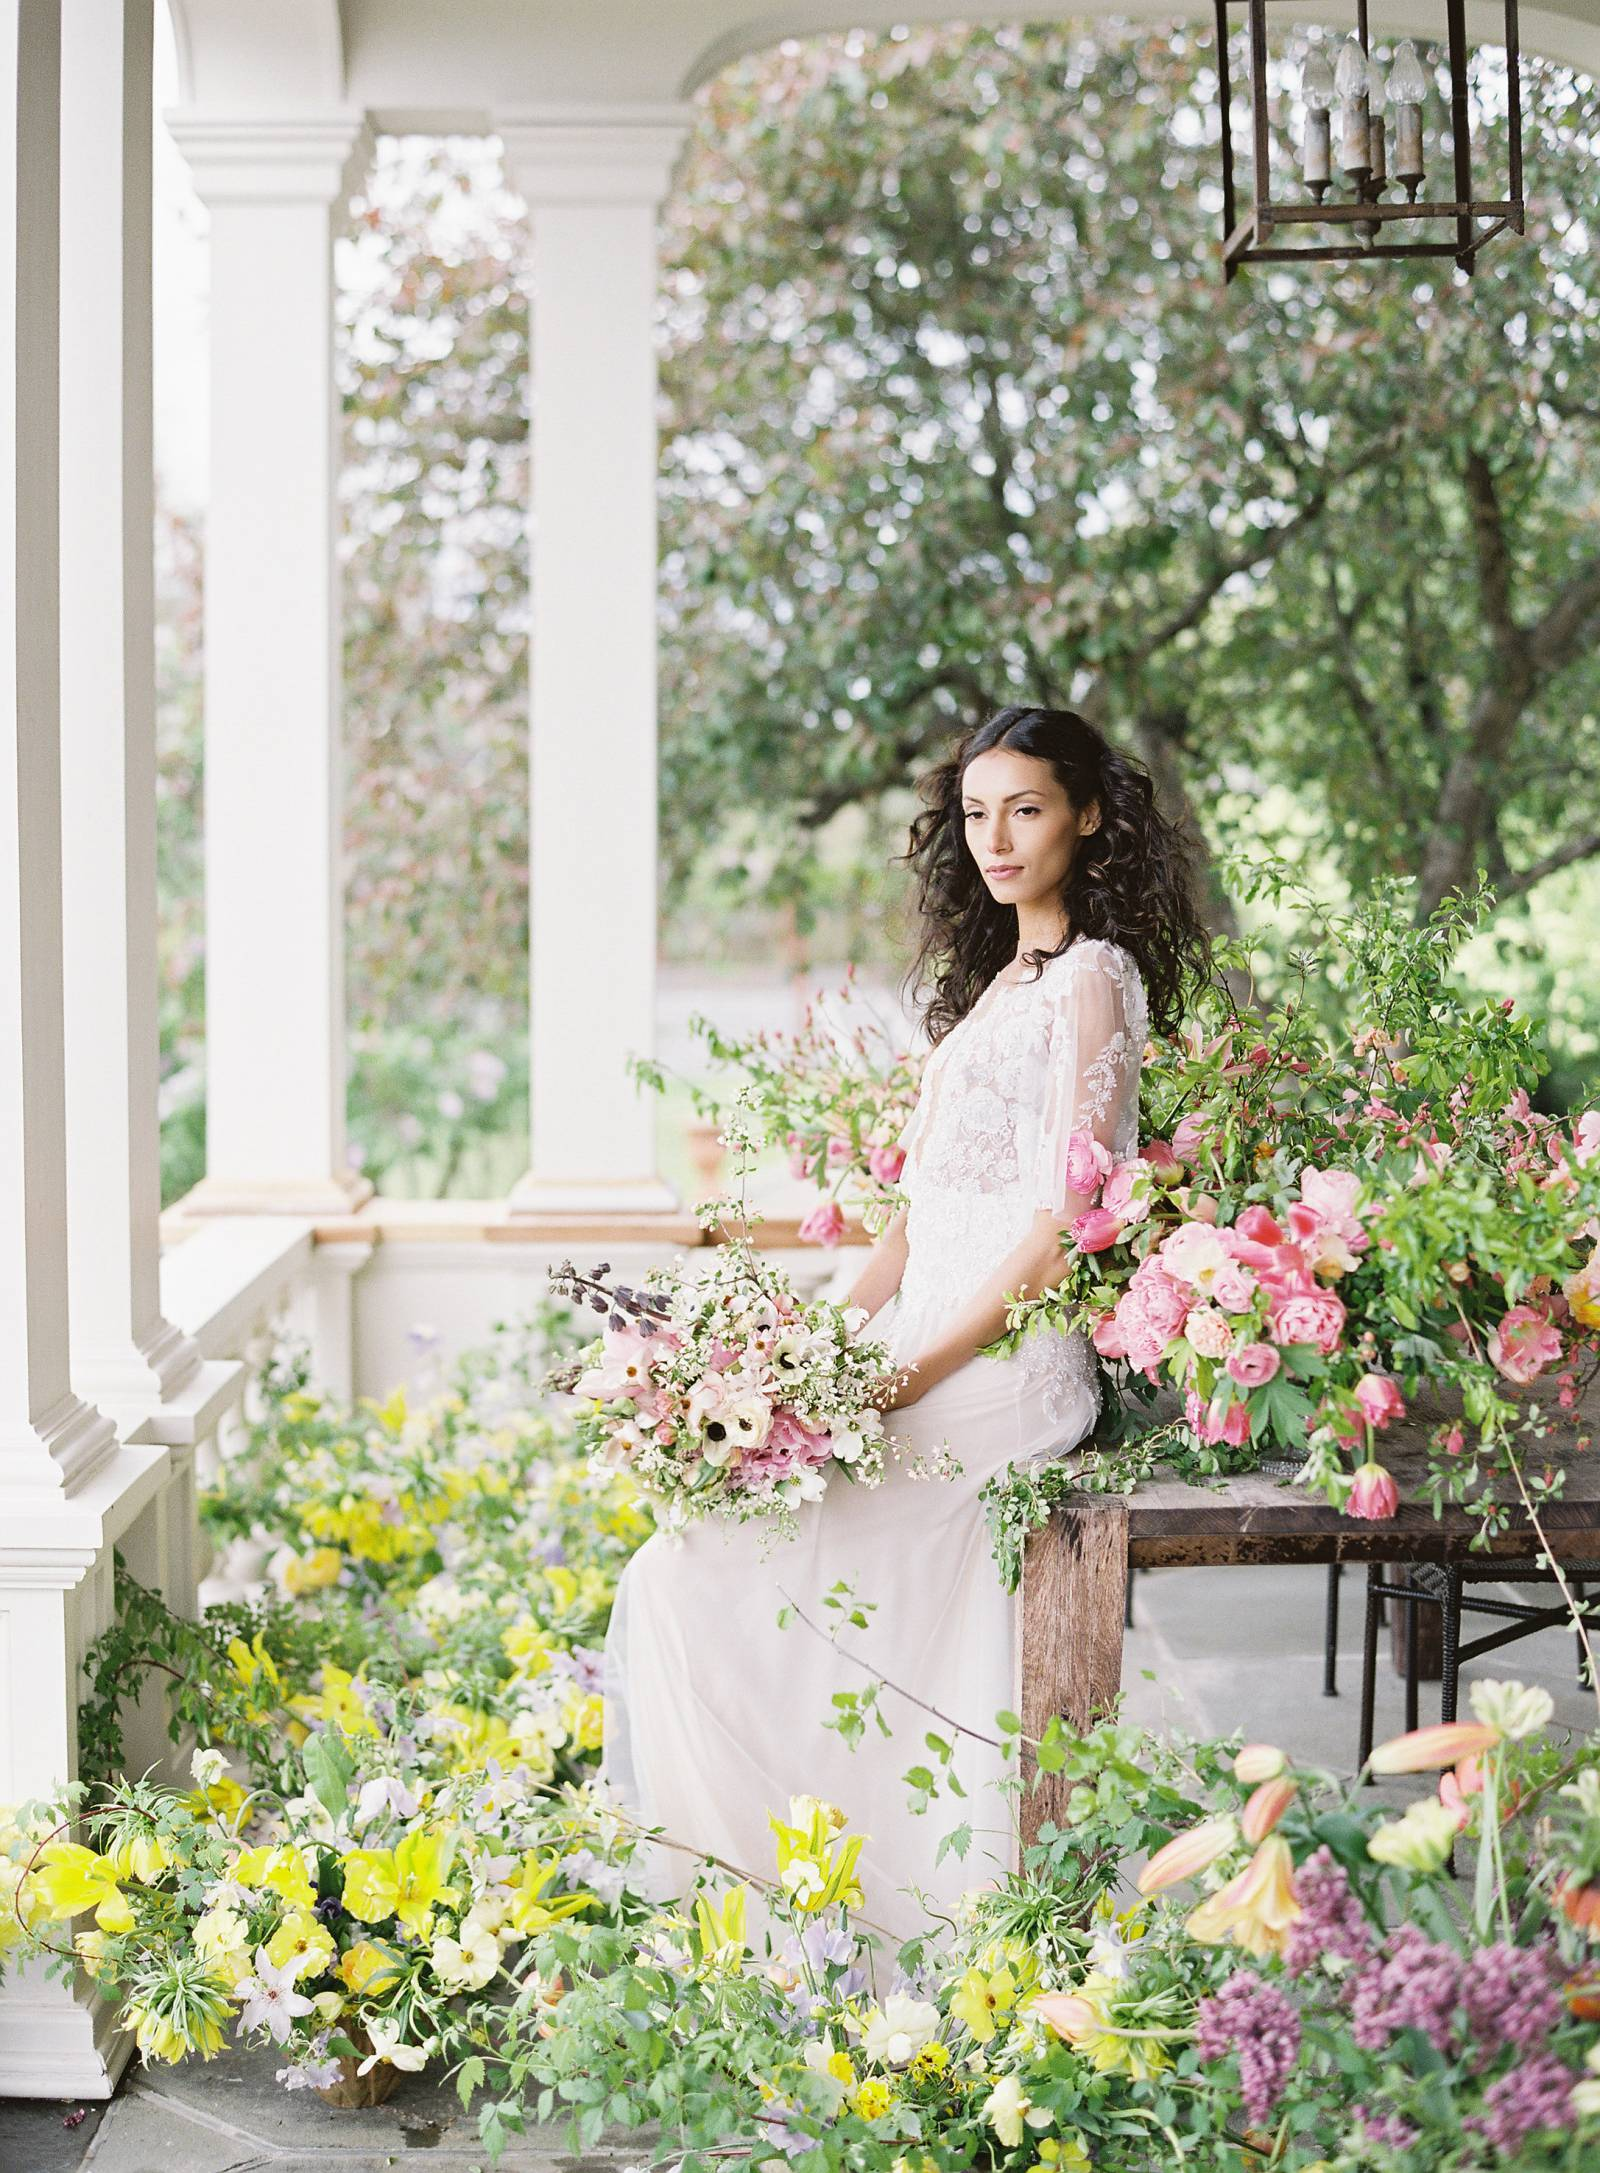 A Whimsical Floral Workshop At Ham House By Ariella Chezar New